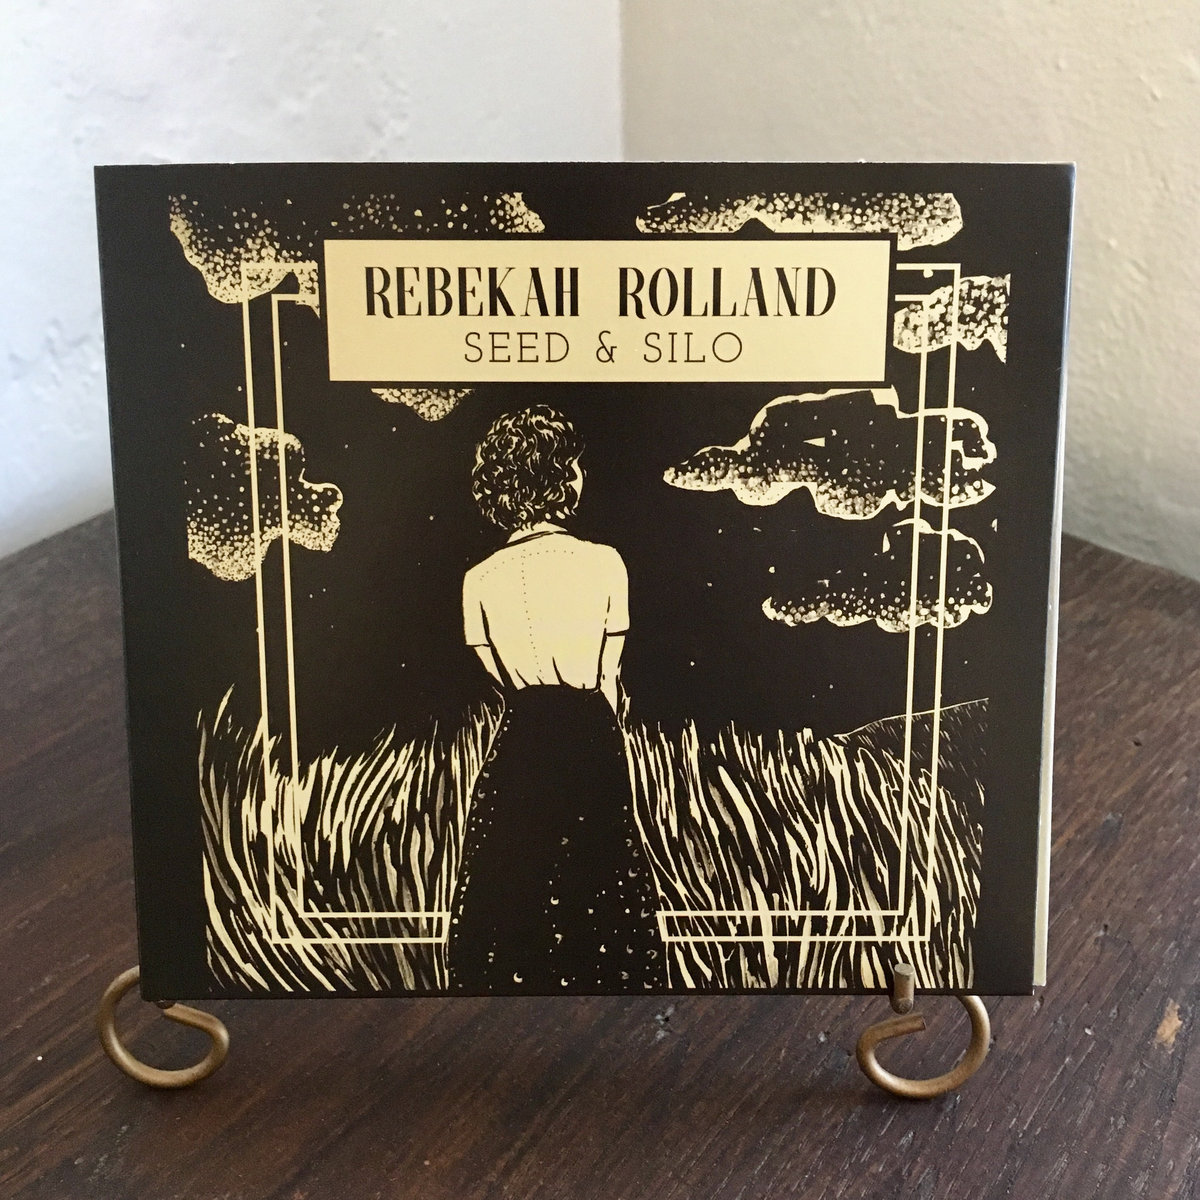 Looking to the Sun | Rebekah Rolland